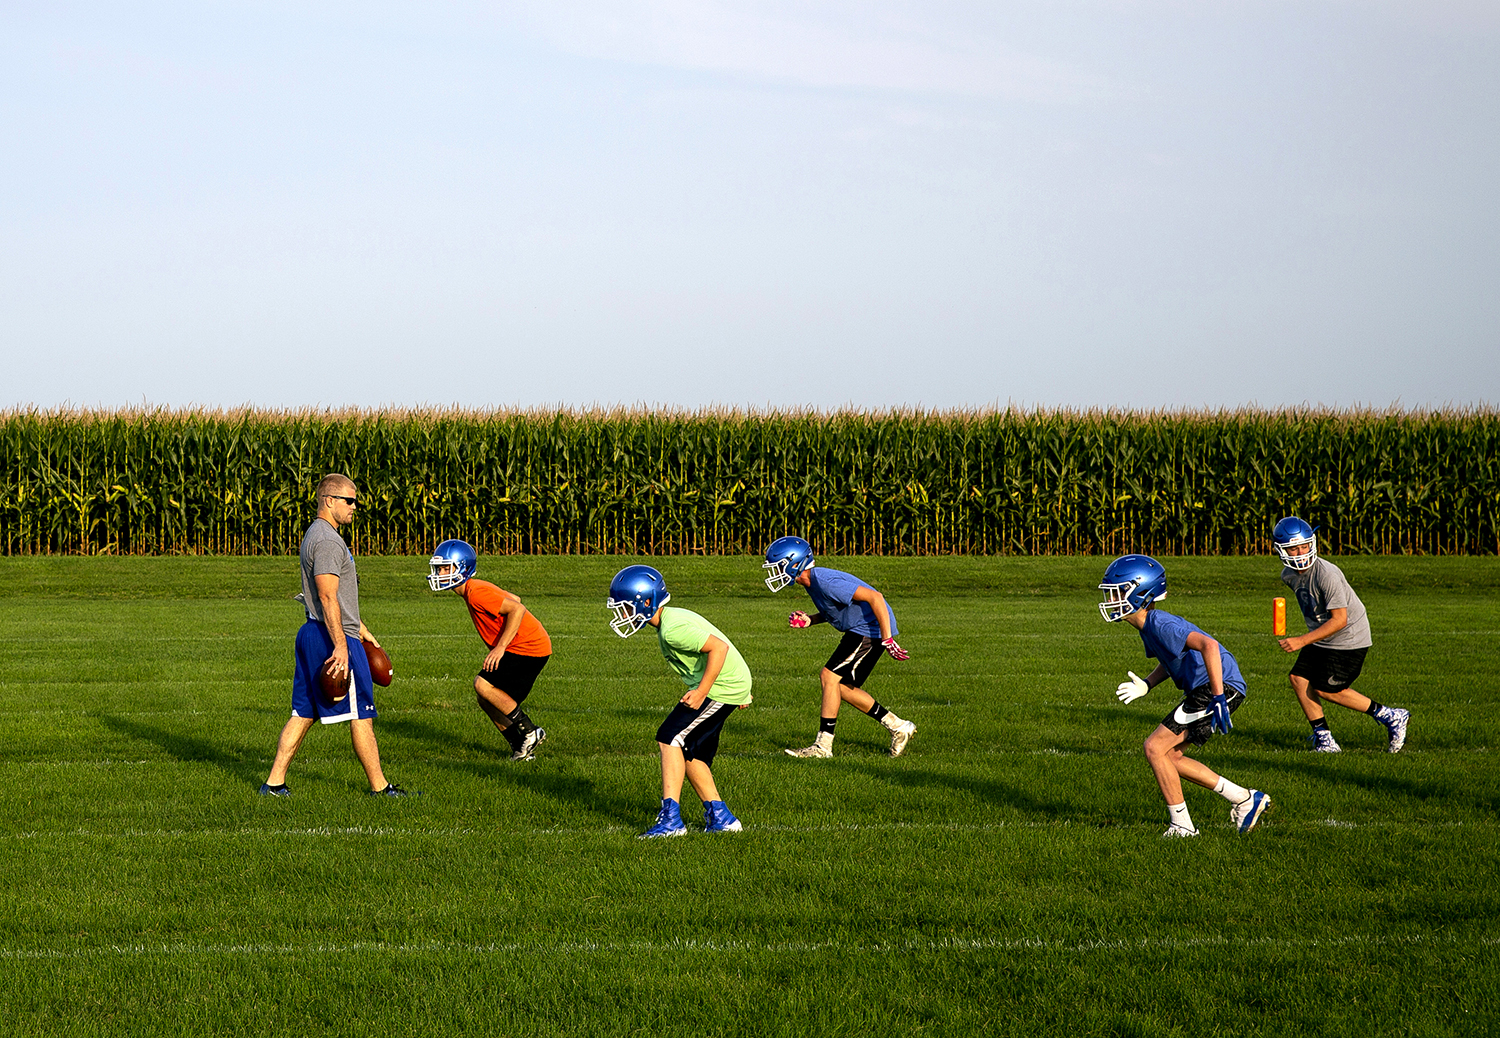 The Auburn High School football team runs through drills on the first day of team practice permitted by the Illinois High School Association Monday, Aug. 6, 2018 at Auburn High School in Auburn, Ill.[Rich Saal/The State Journal-Register]